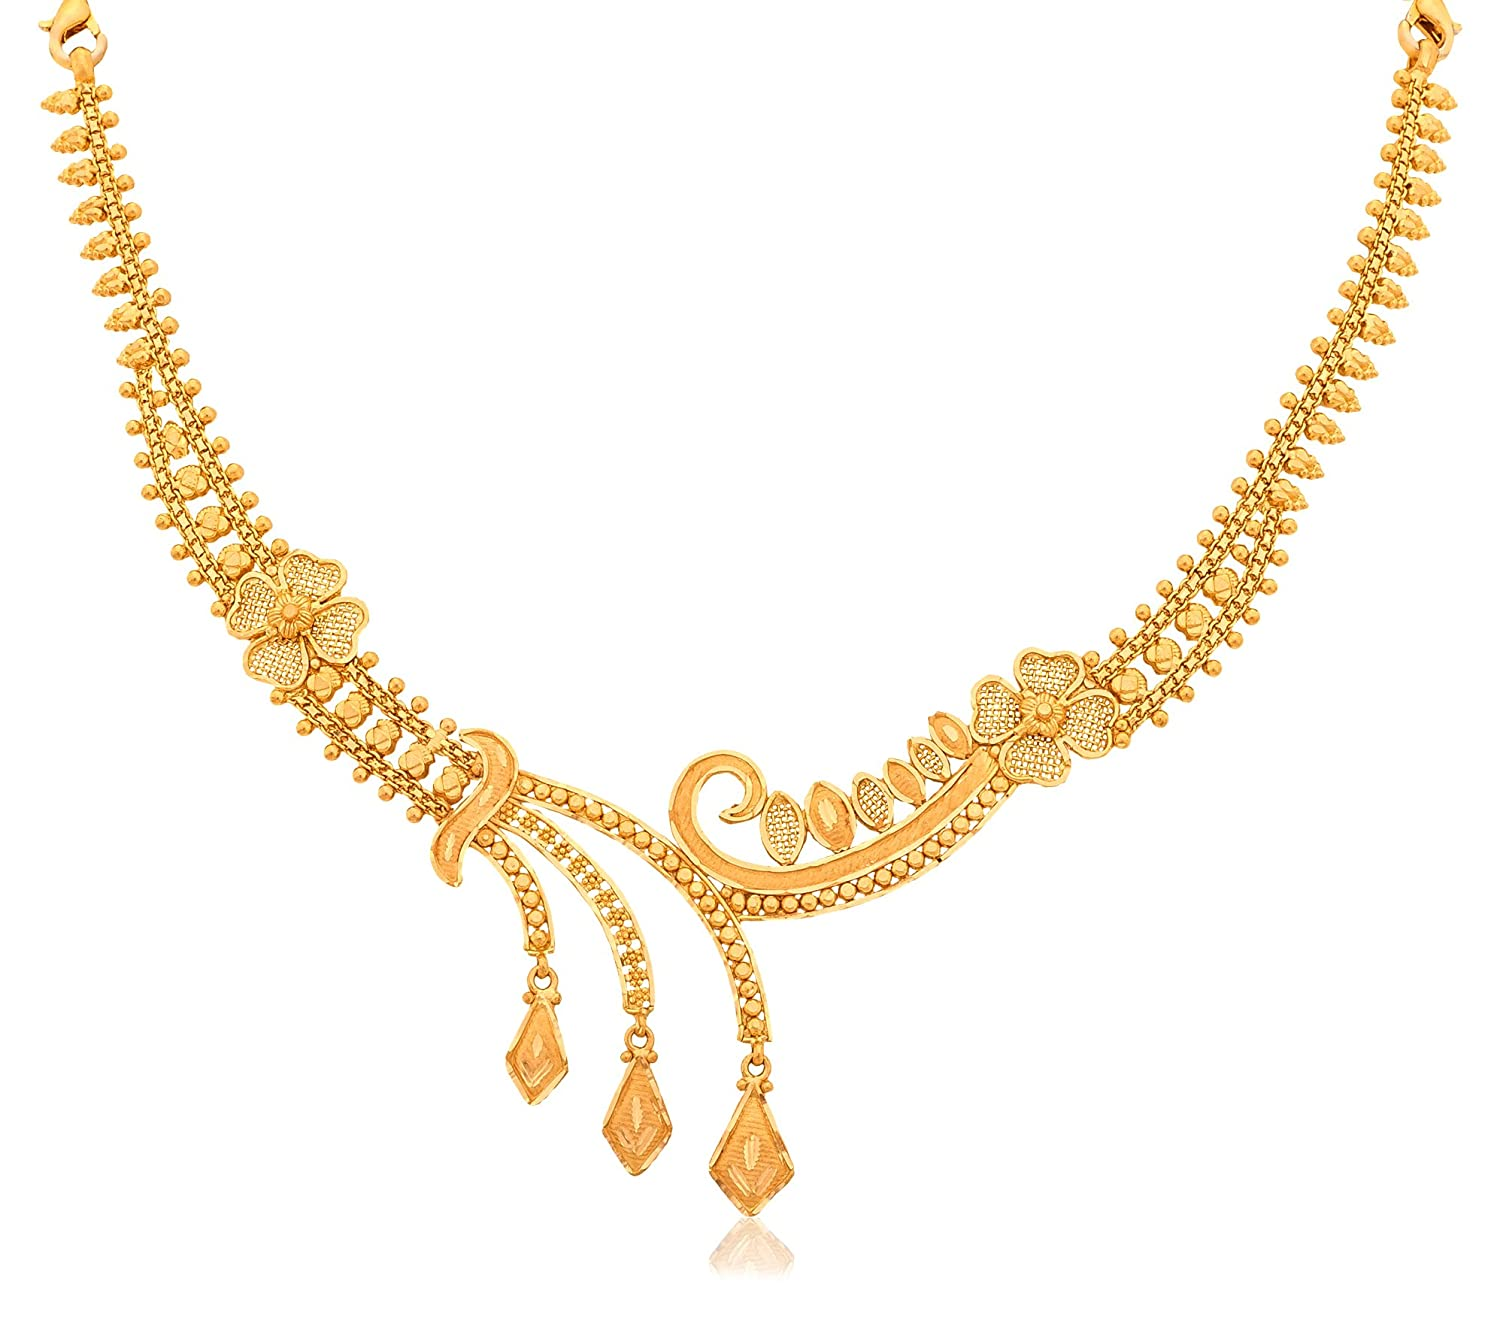 15 Best Gold Necklace Designs in 40 Grams | Styles At Life